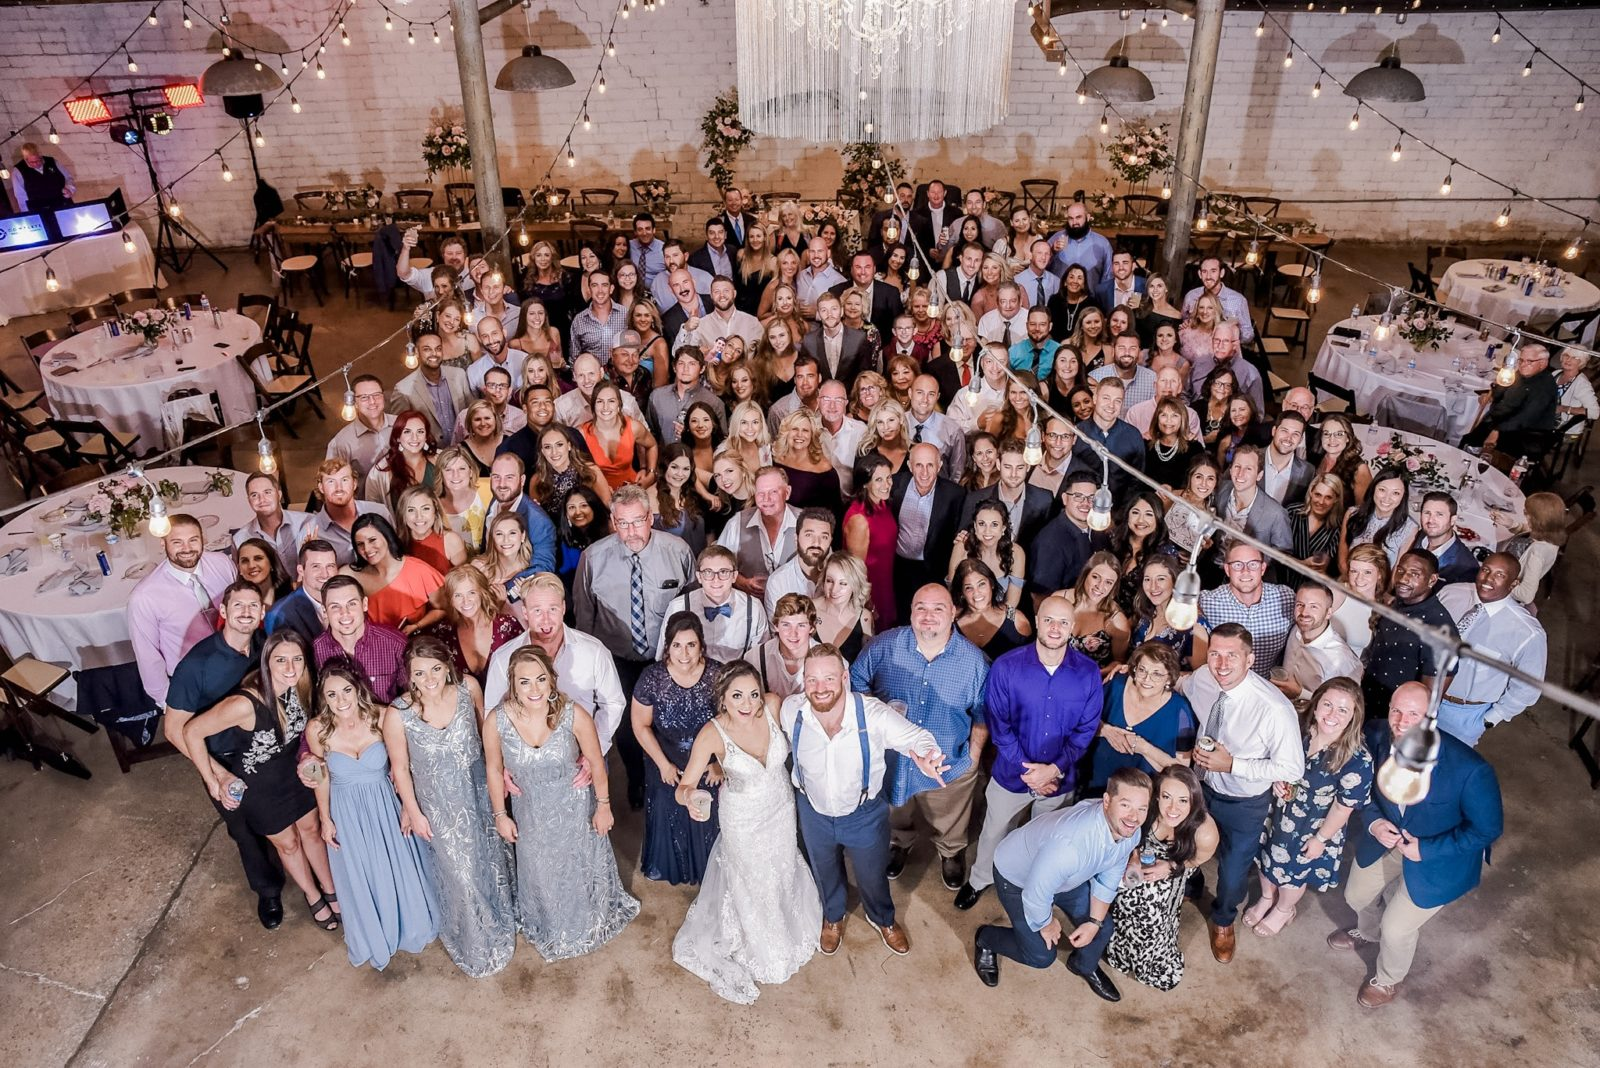 Group Wedding Photo at 4 Eleven DFW Wedding